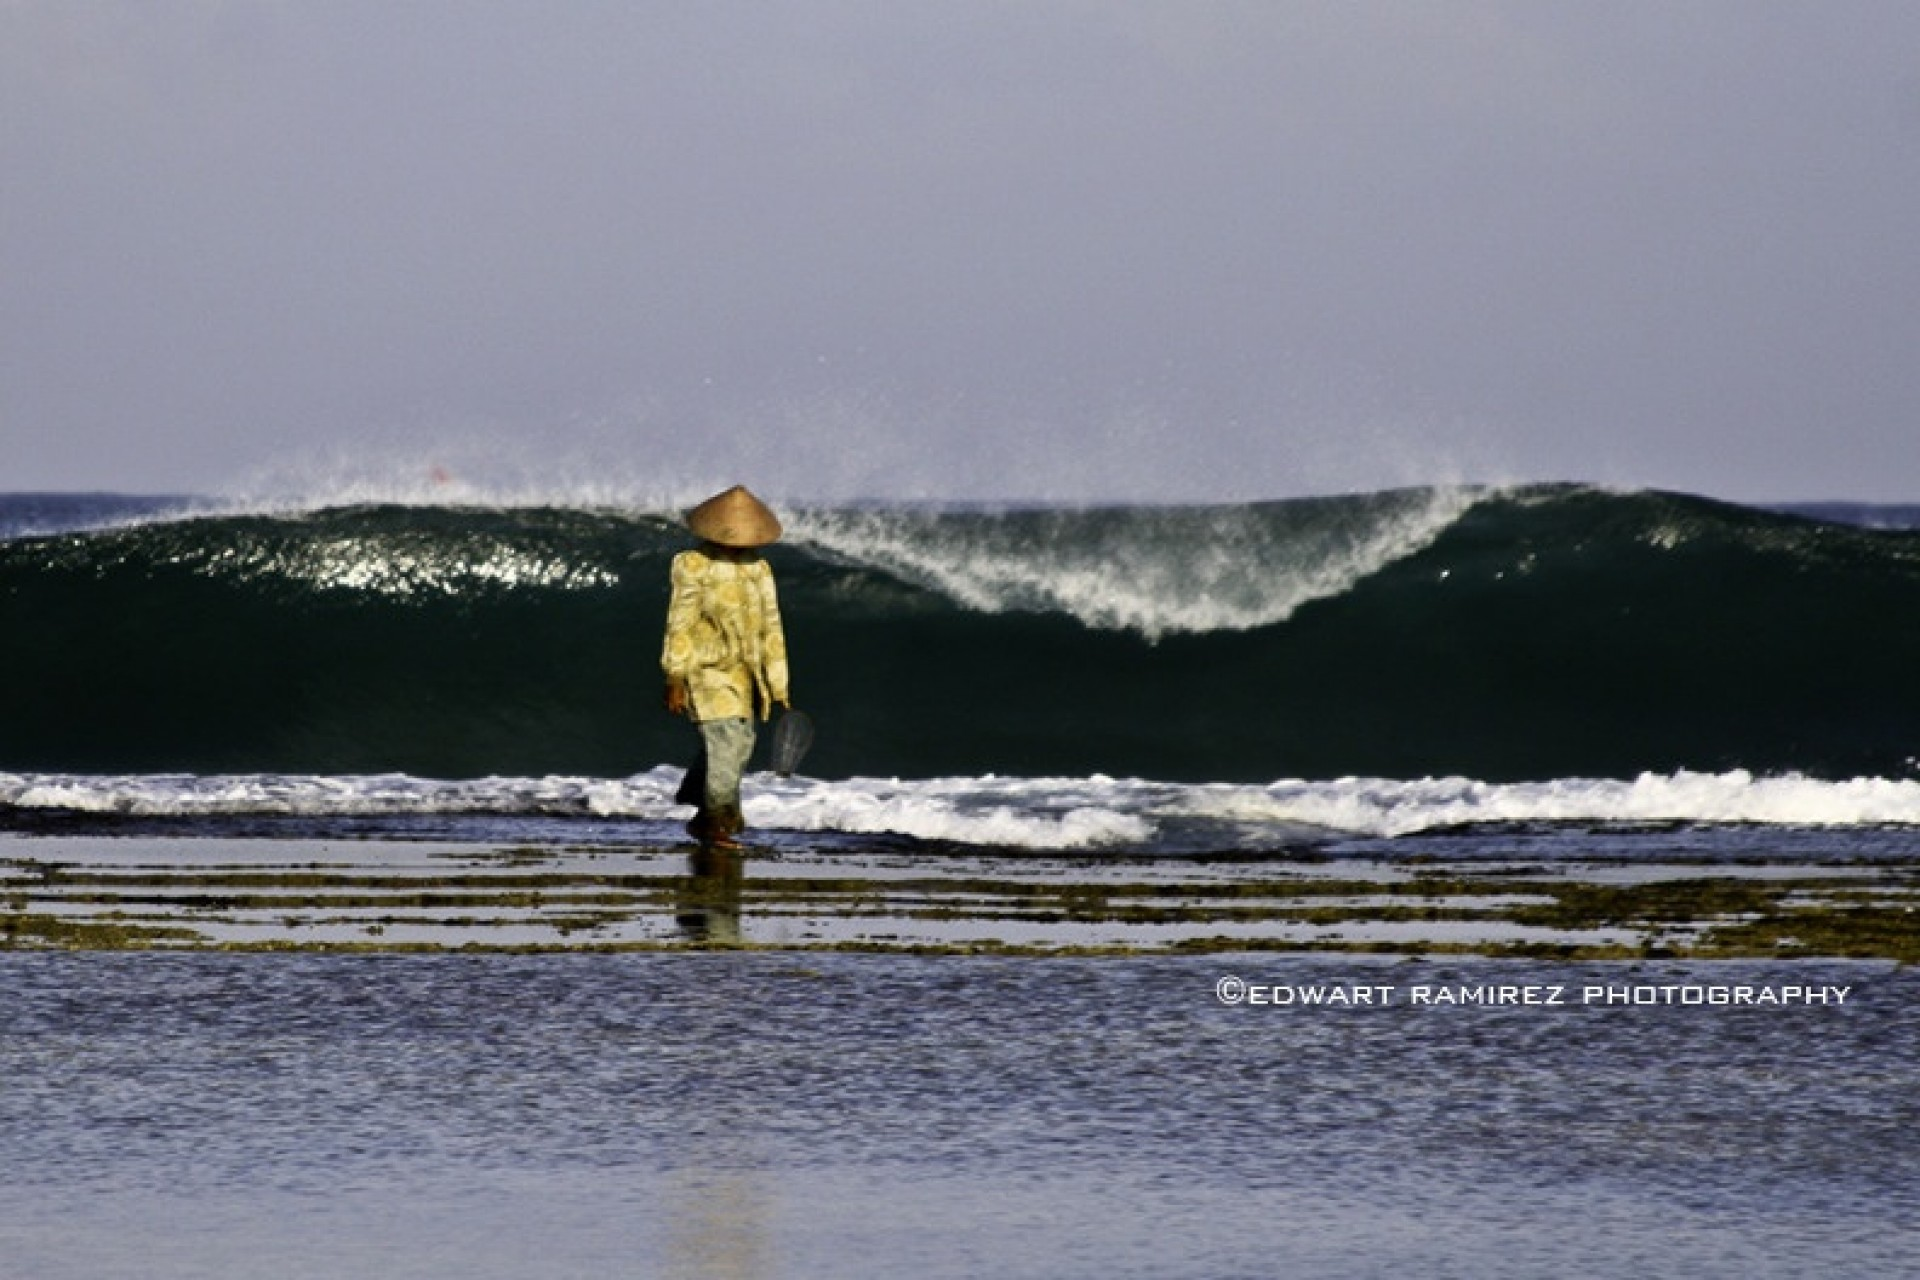 Edwart Ramirez's photo of Sawarna